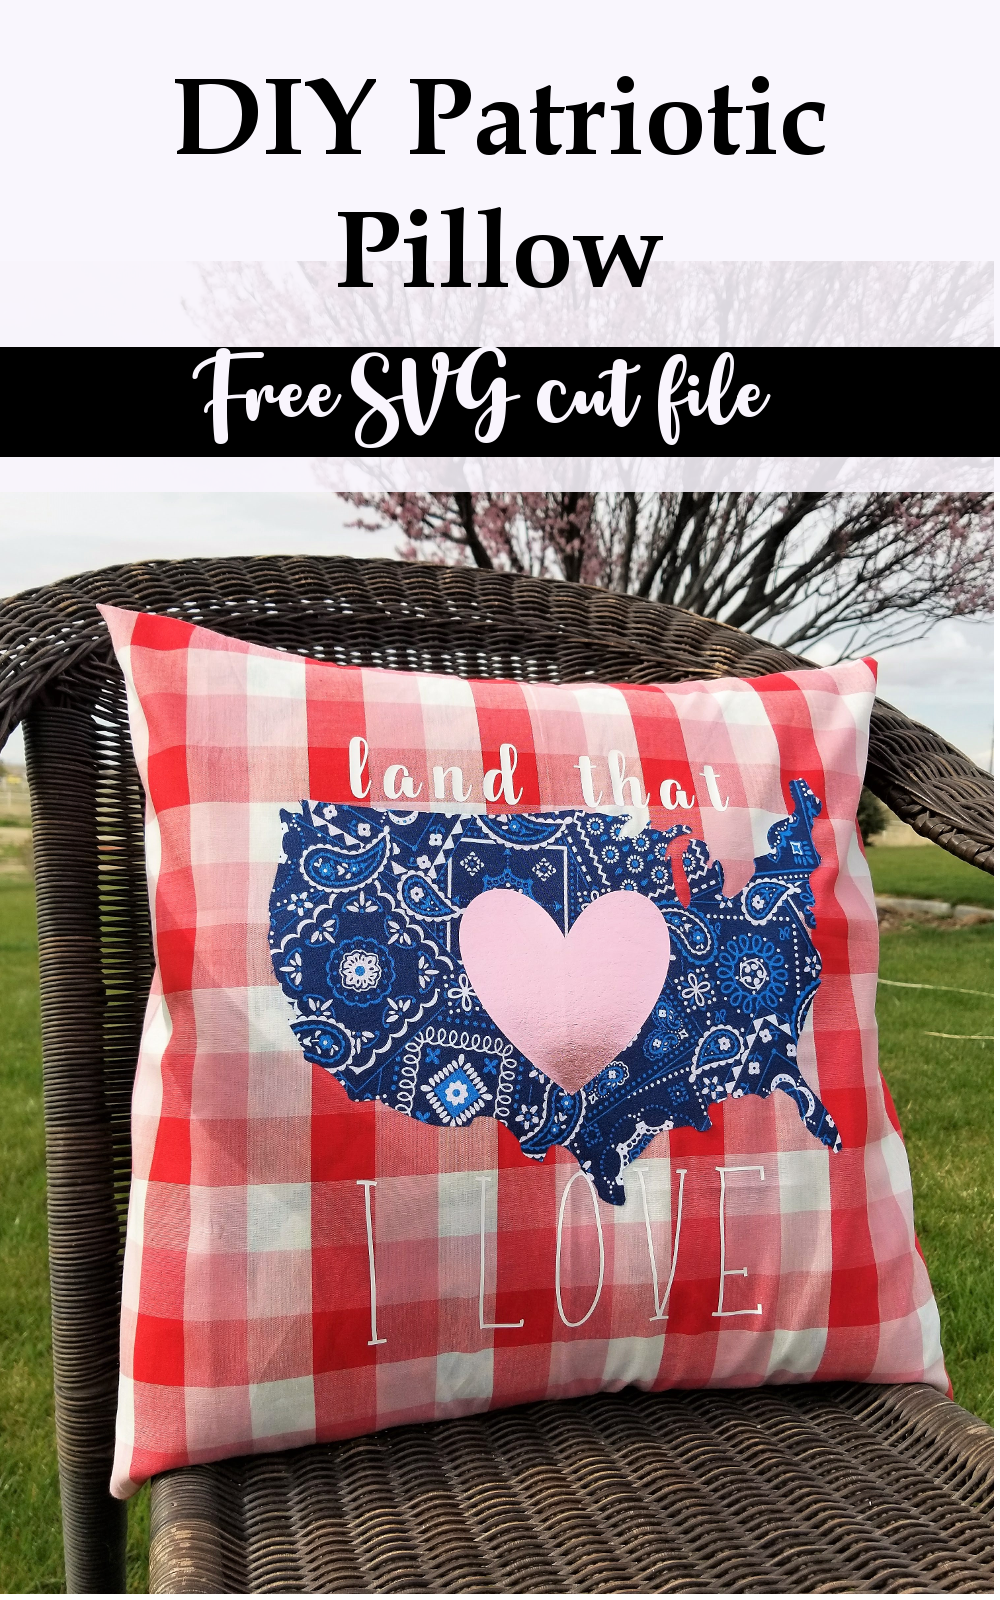 Free Patriotic Pillow Pattern with PDF and SVG file - GYCT Designs